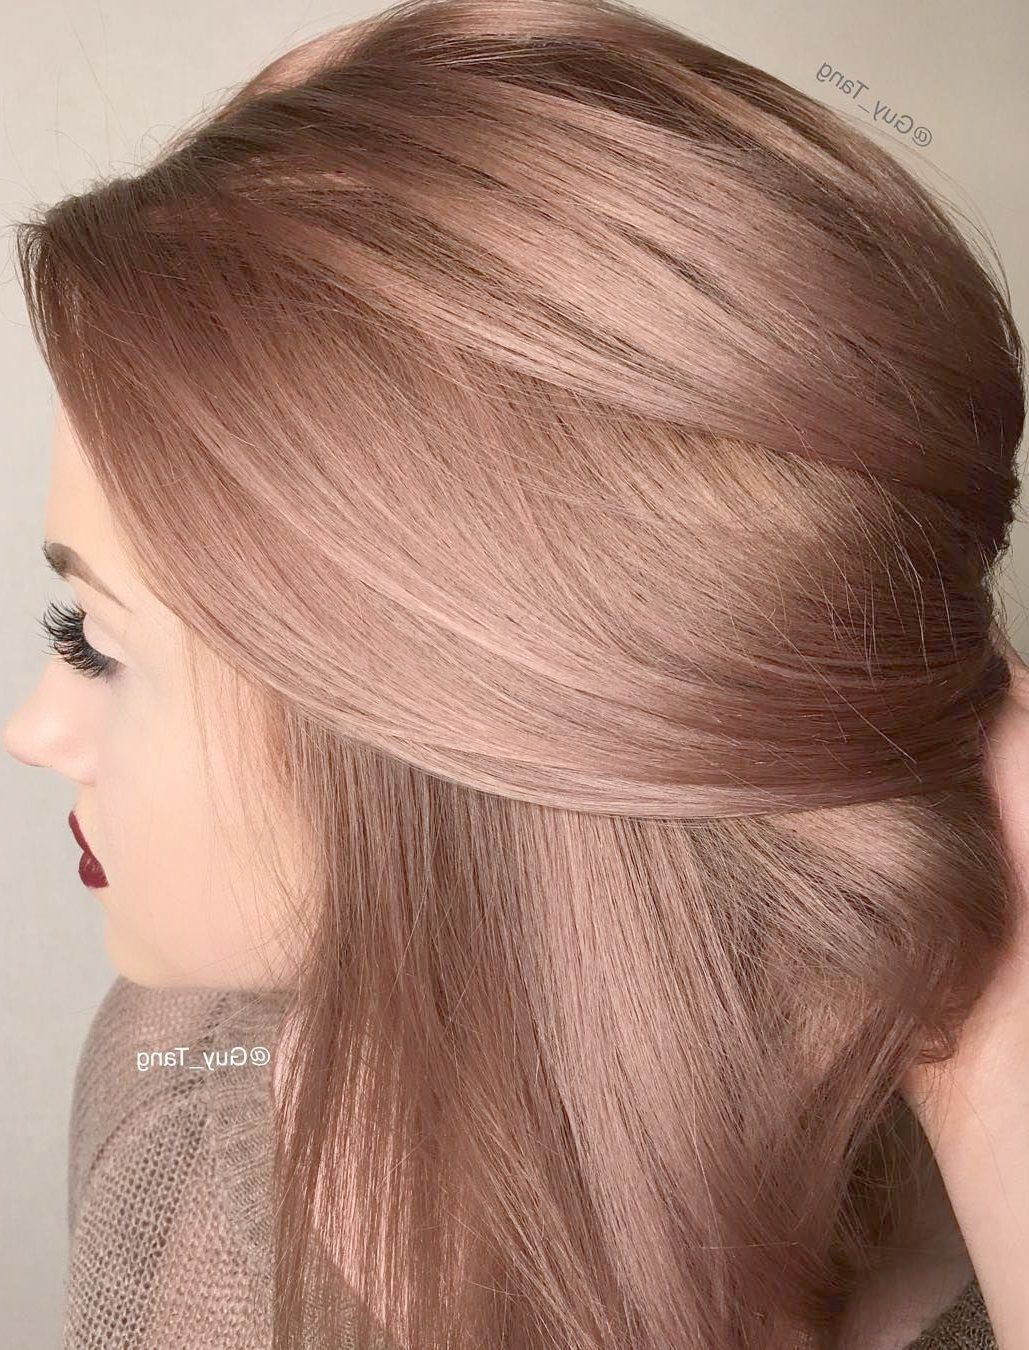 Hair Color Ideas For Blondes With Blue Eyes And Fair Skin Either Haircut Simi Valley In Hair Extensions Hair Color Rose Gold Gold Hair Colors Latest Hair Color